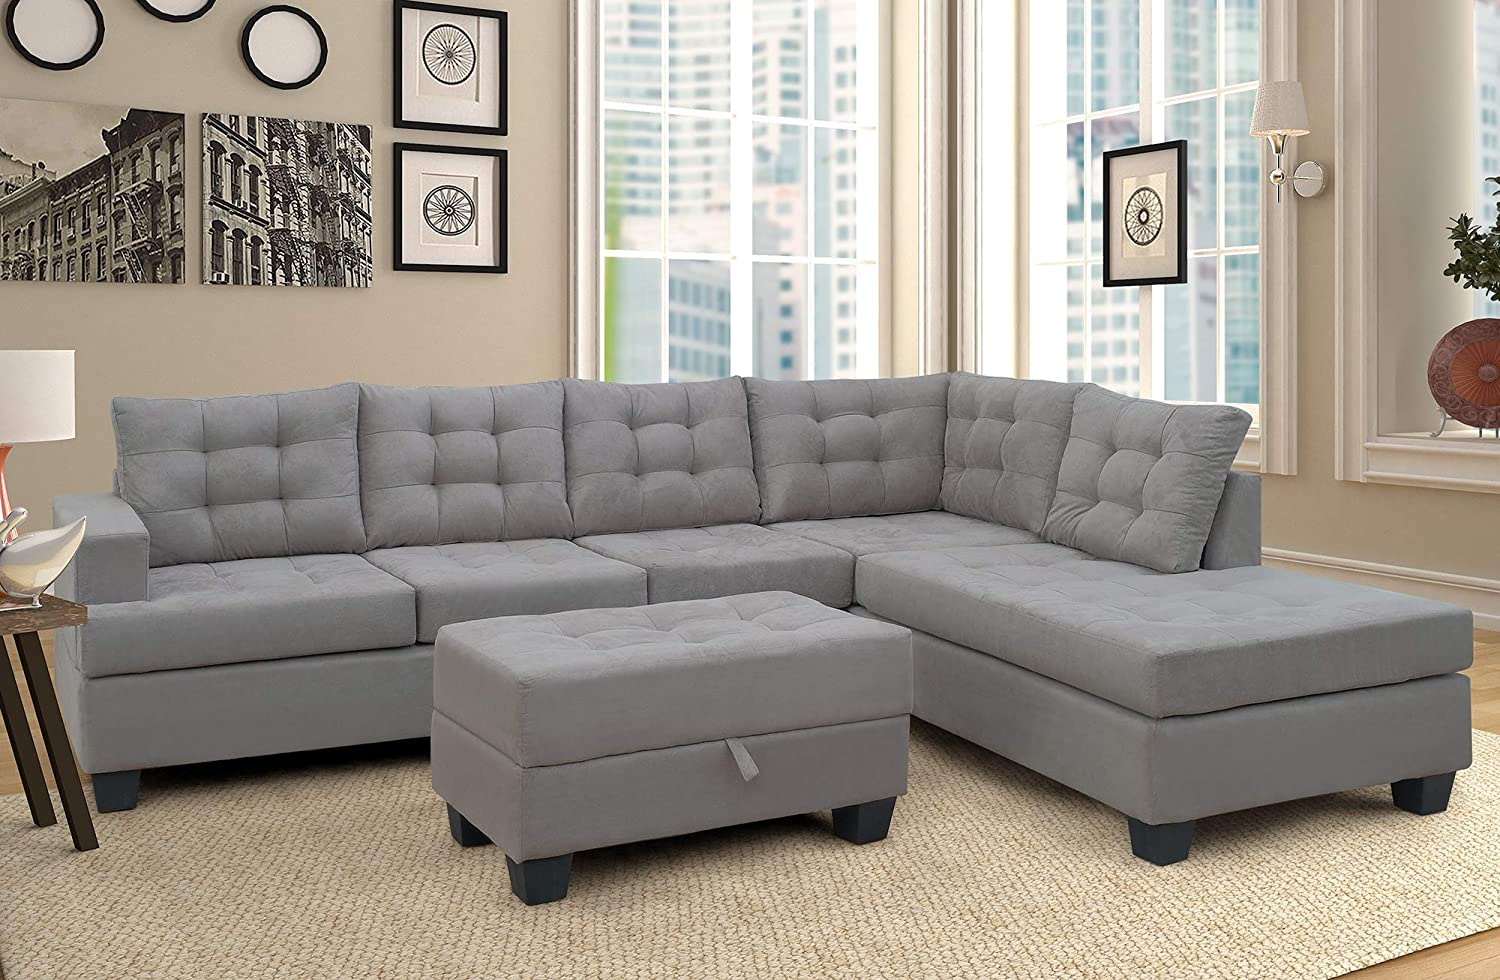 Amazon.com: Merax Sectional Sofa with Chaise and Ottoman 3-Piece ...